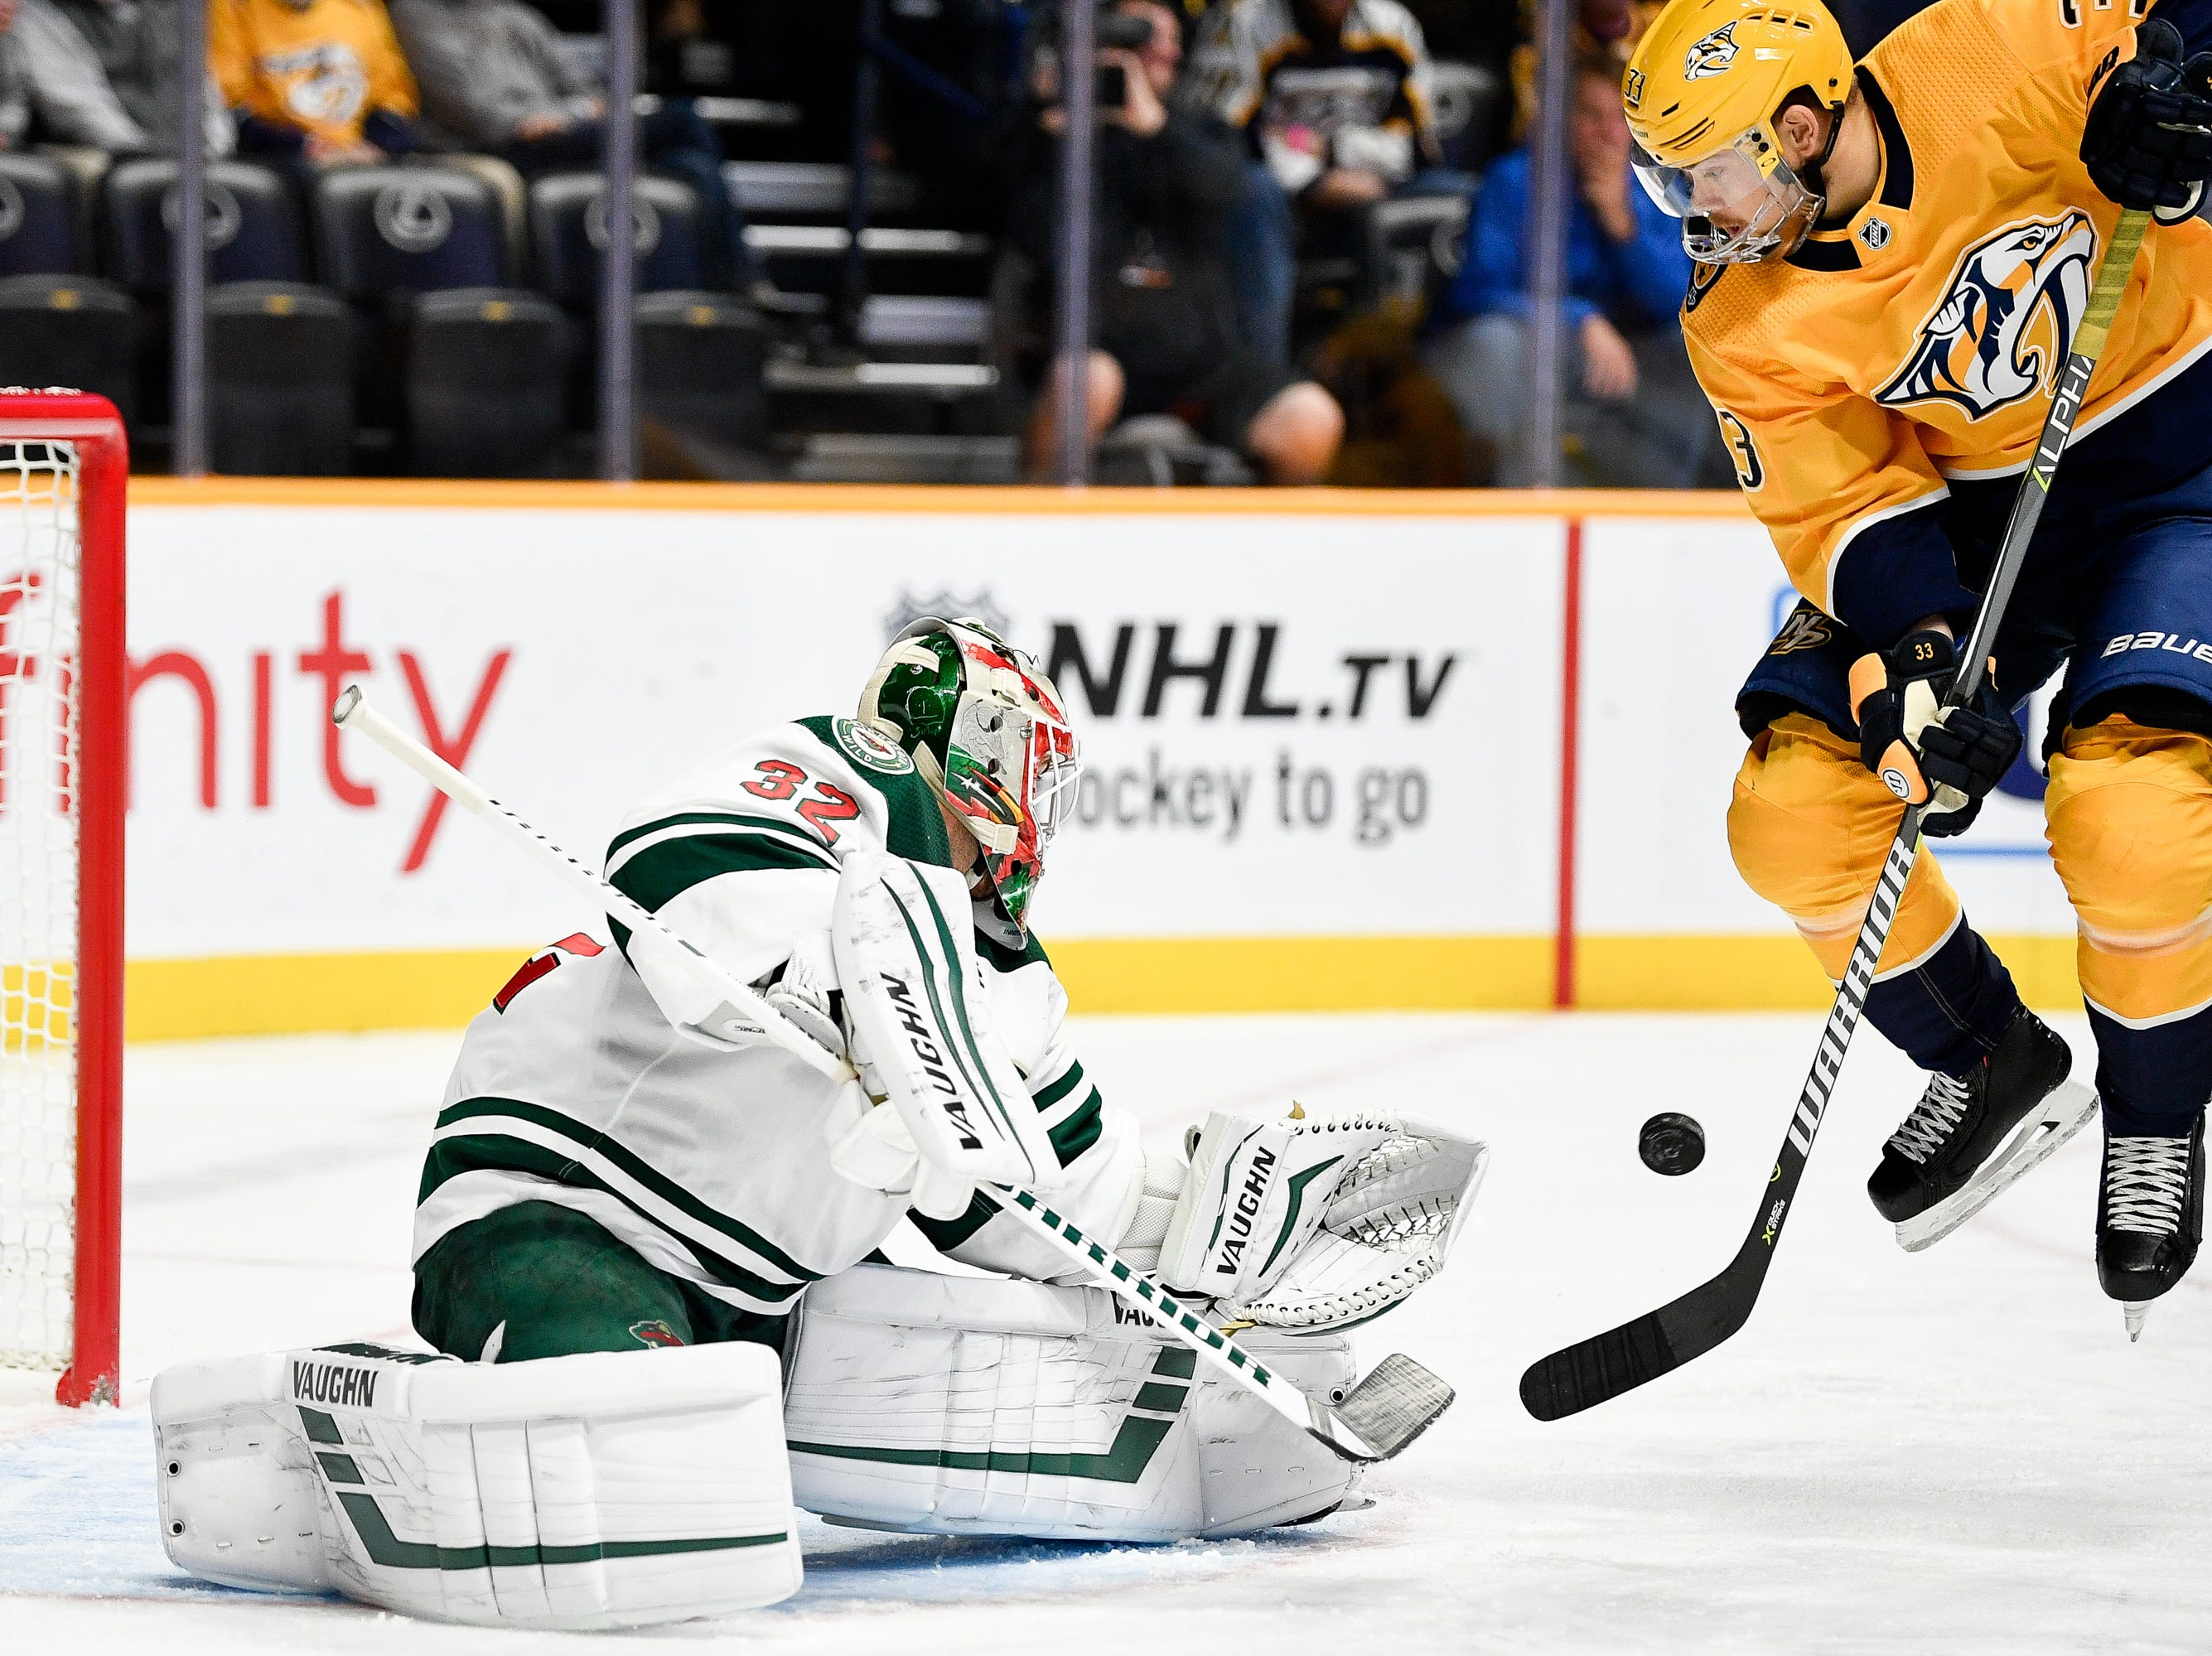 Oct. 15: Predators 4, Wild 2: Nashville Predators left wing Viktor Arvidsson (33) leaps as Minnesota Wild goaltender Alex Stalock (32) defends against a shot during the first period at Bridgestone Arena in Nashville, Tenn., Monday, Oct. 15, 2018.